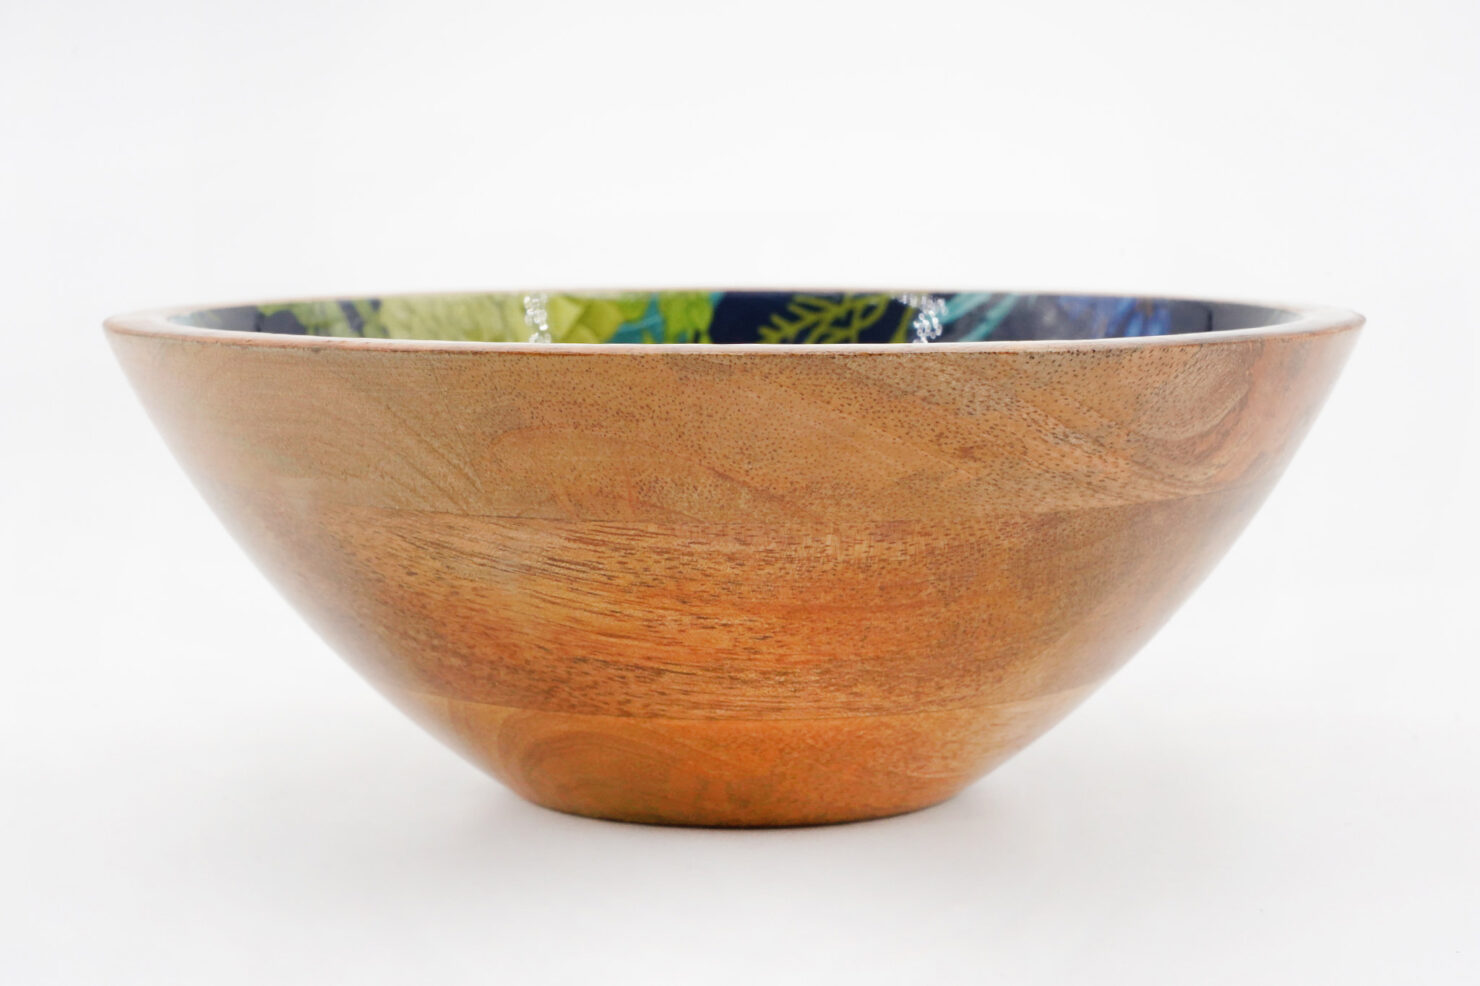 BOWL BLUE CHRISTMAS MANGO WOOD 18CM - BY ROOM